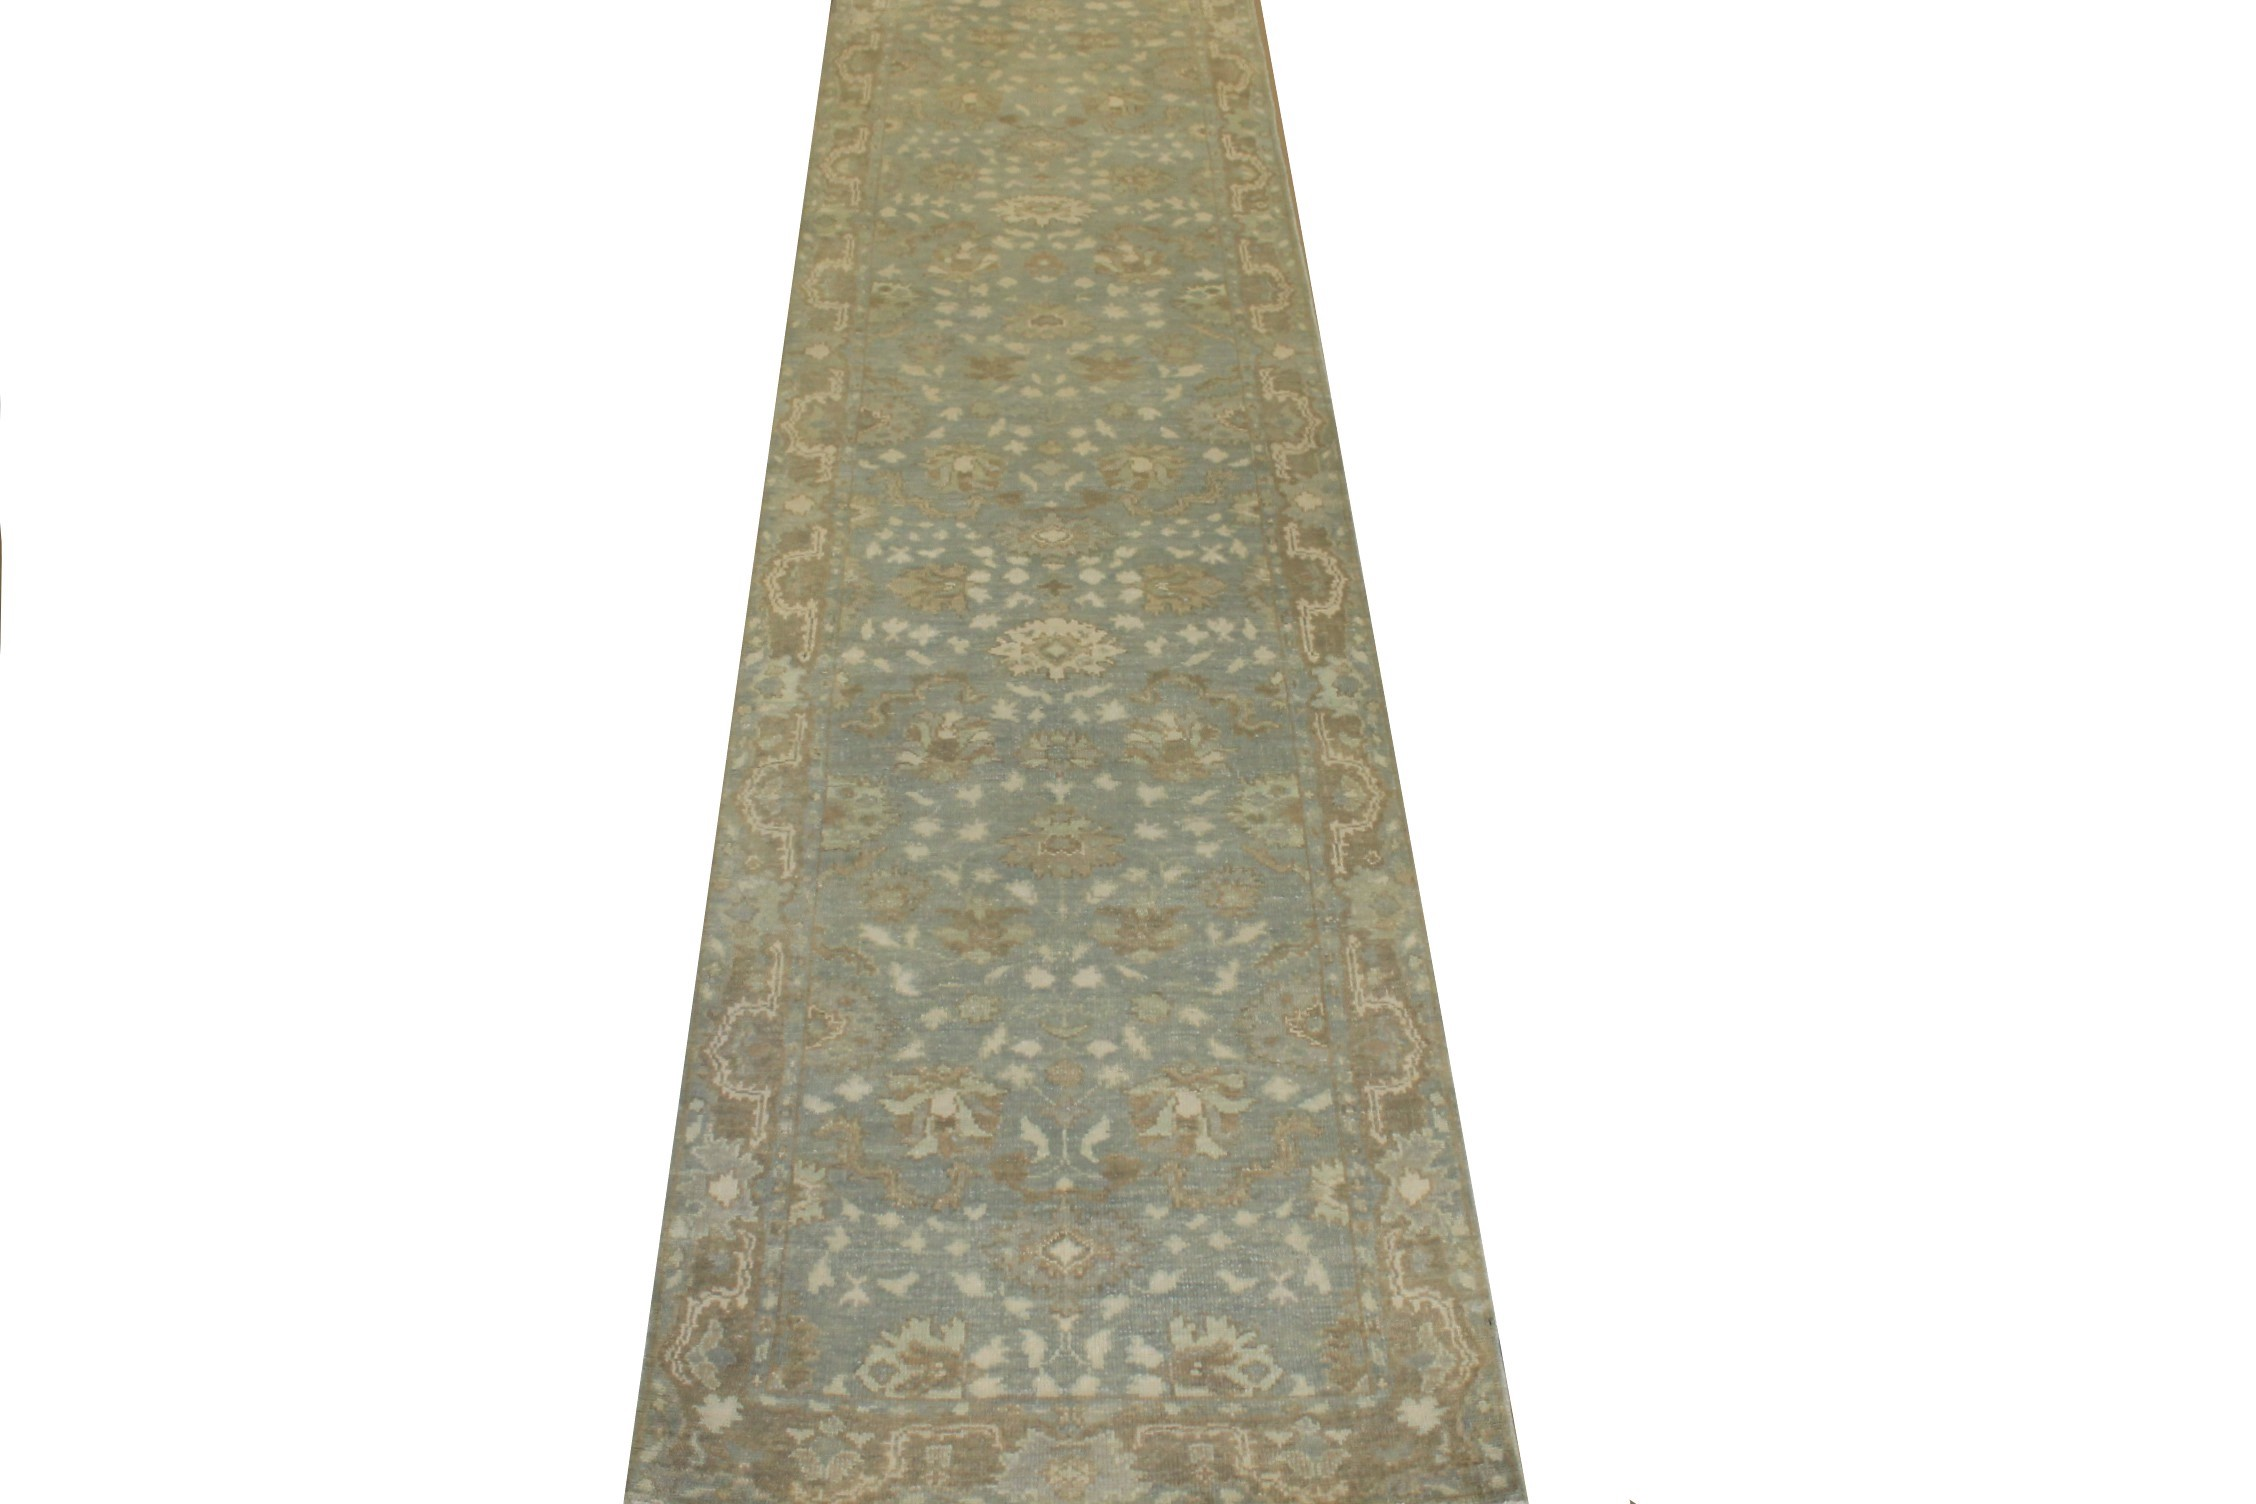 12 ft. Runner Oushak Hand Knotted Wool Area Rug - MR024322